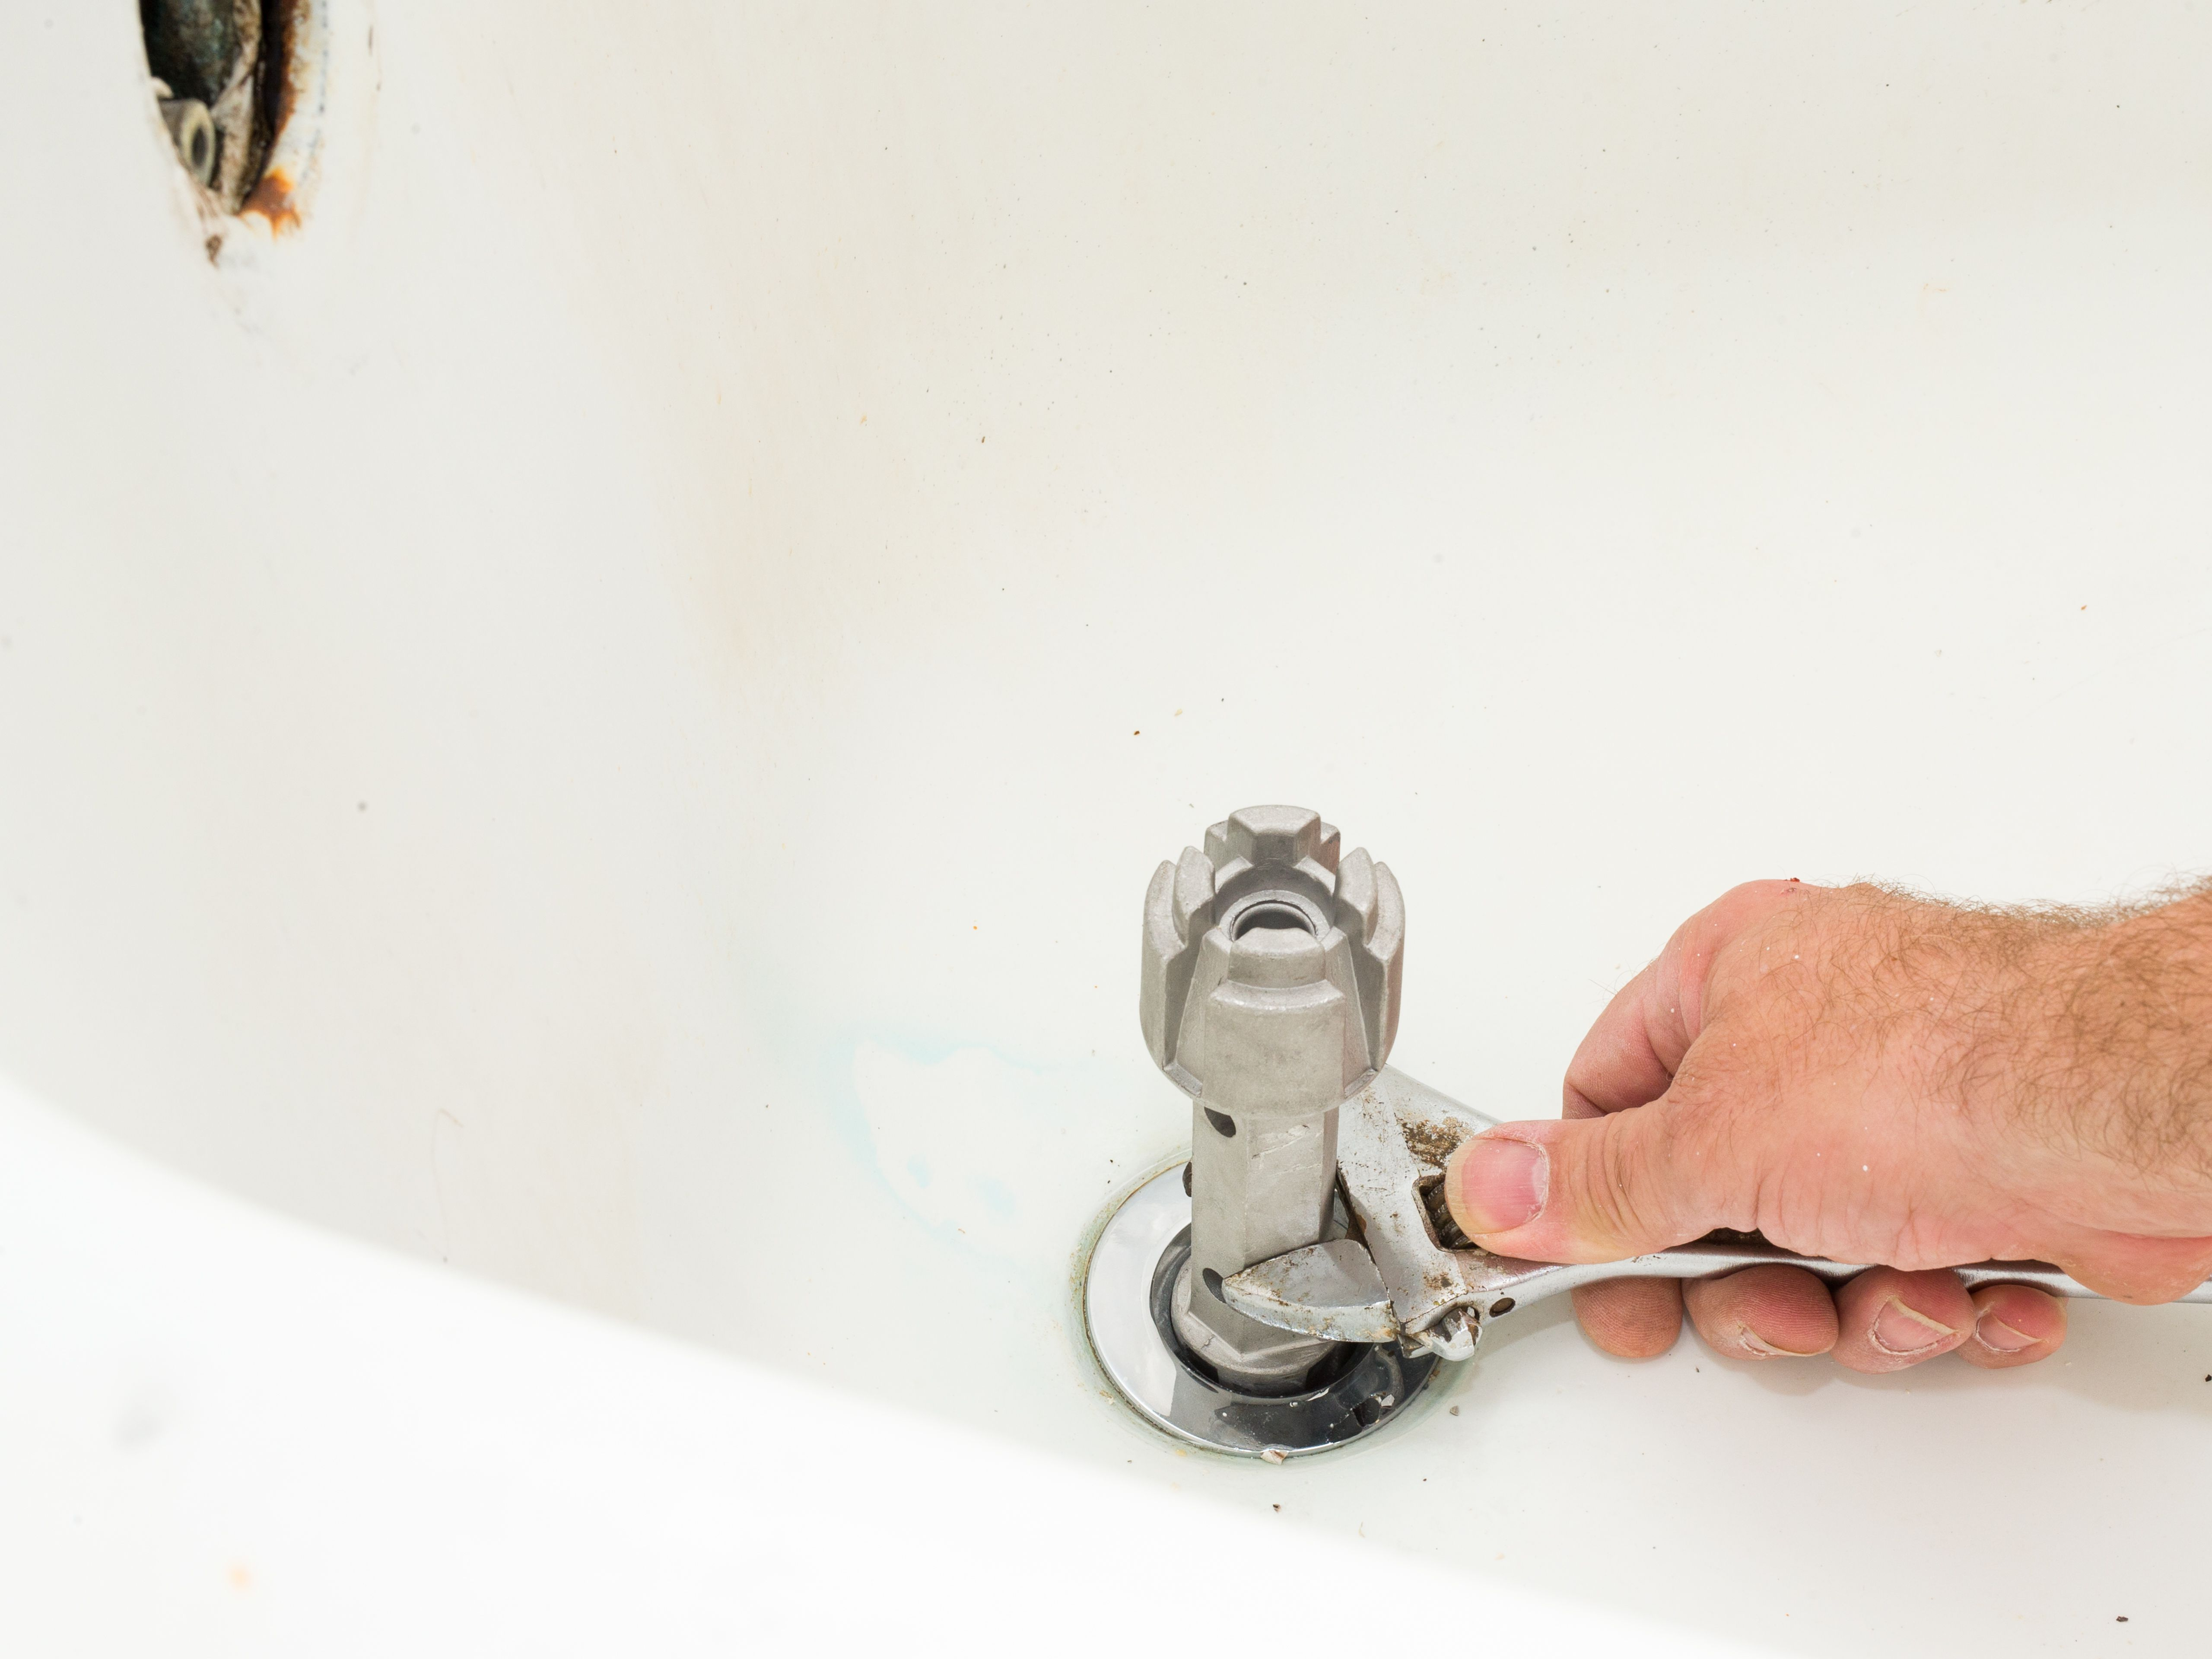 How To Remove A Tub Drain In Your Home